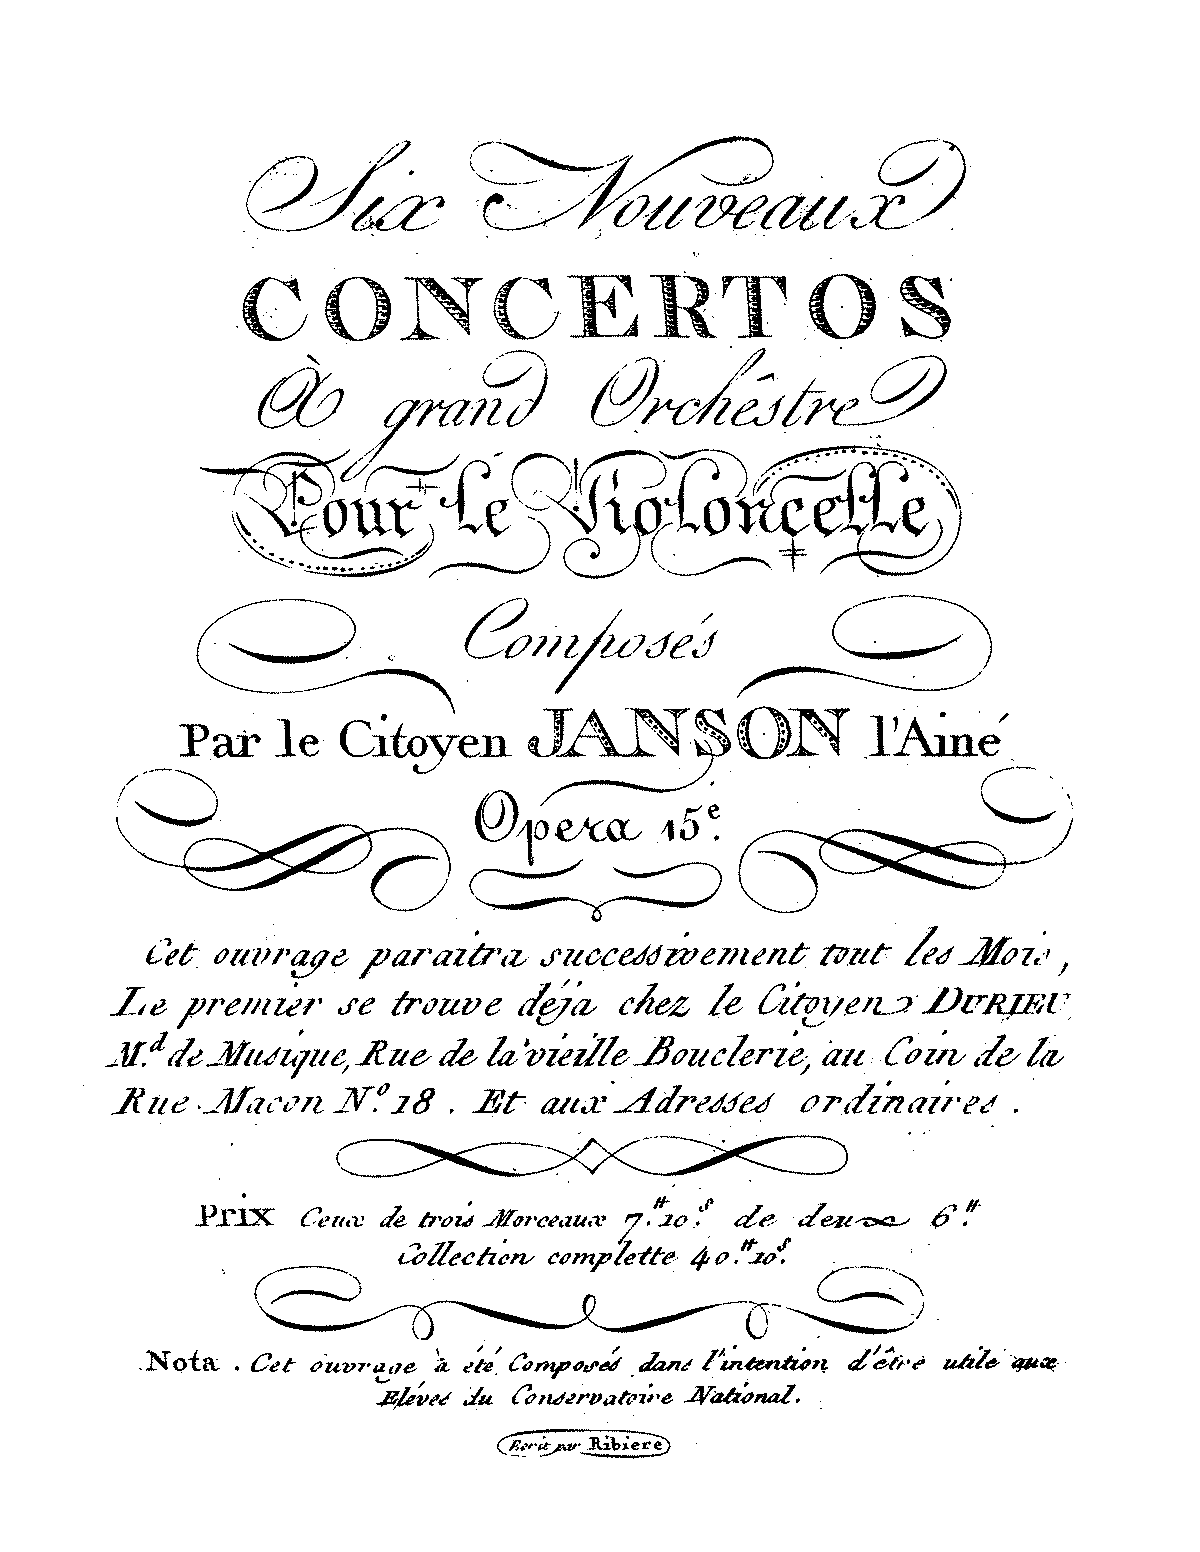 PMLP329149-Janson - Cello Concerto No1 in Eb Major Op15e 1799 (Vc solo, Vln1, Vln2, Vla, Vc, 2Fl, 2Hrn) Parts.pdf